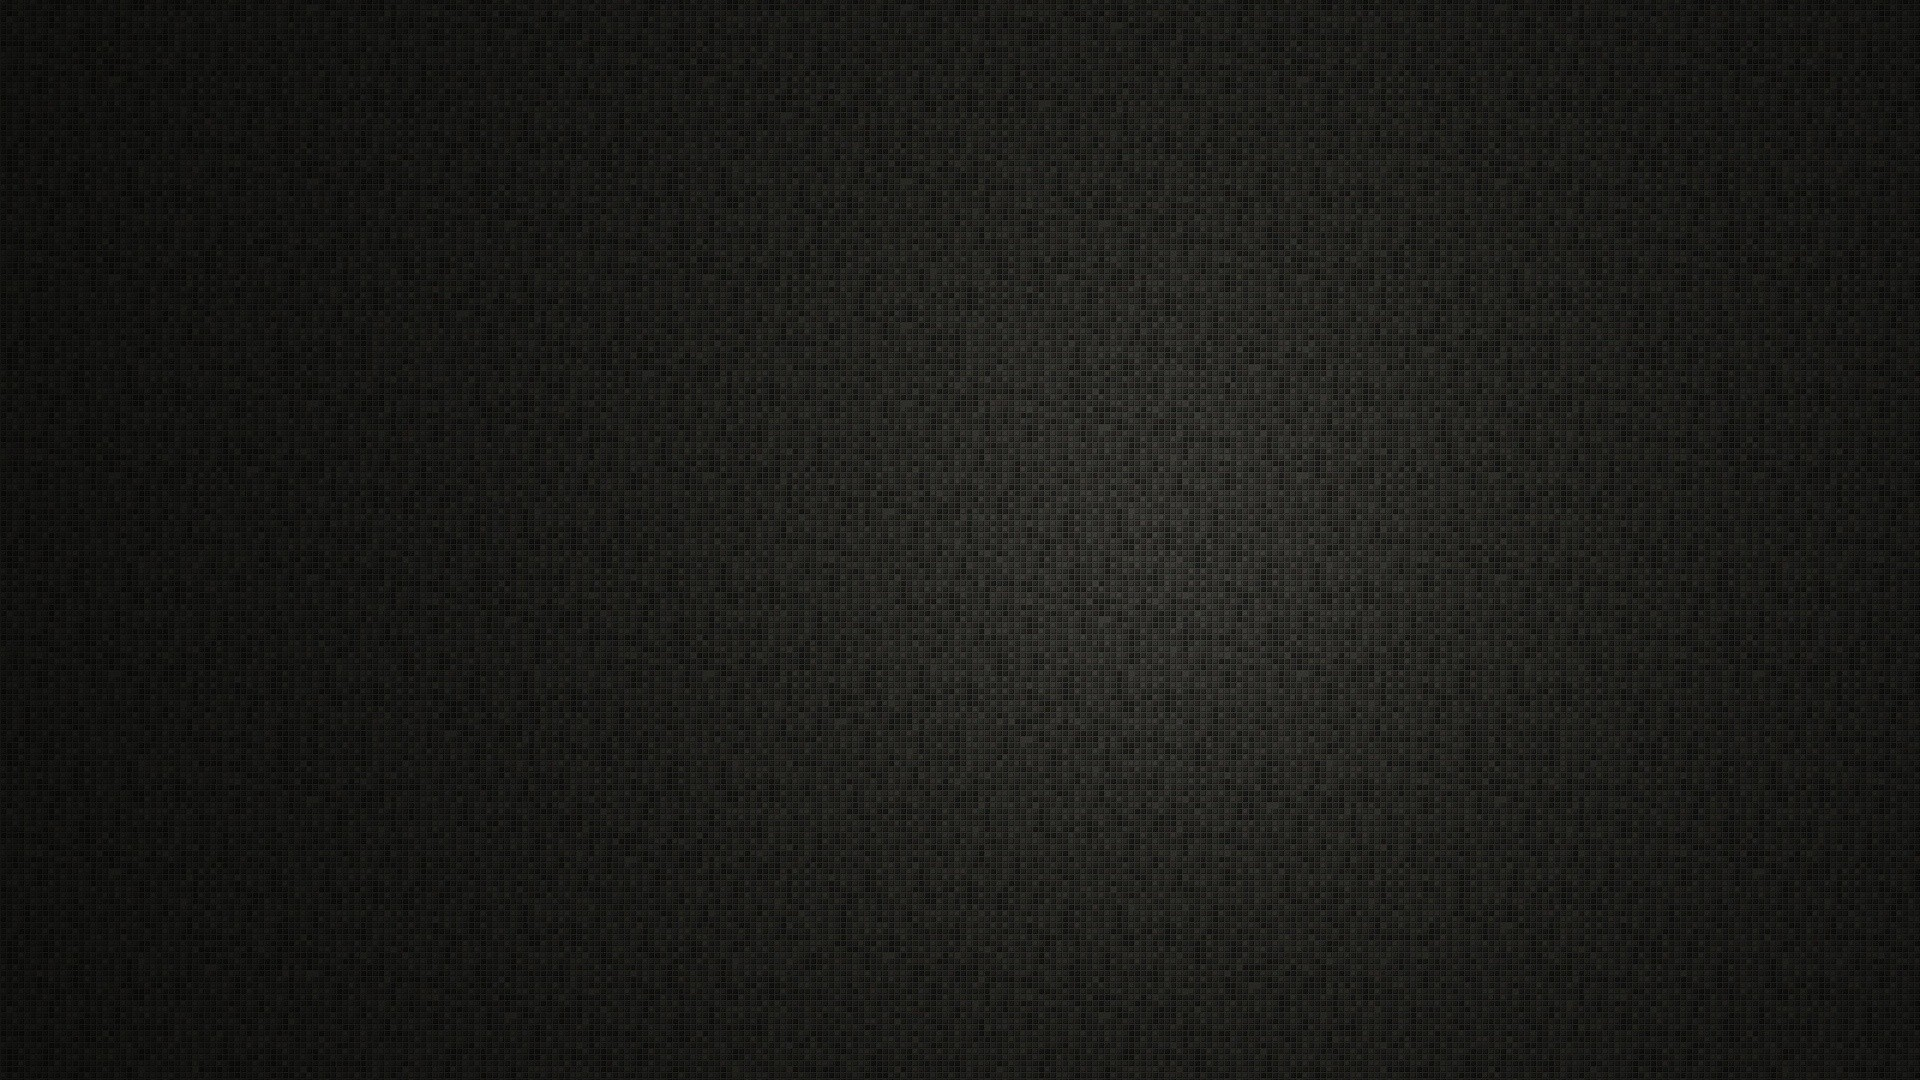 black minimalistic dark patterns textures wallpaper background 1920x1080